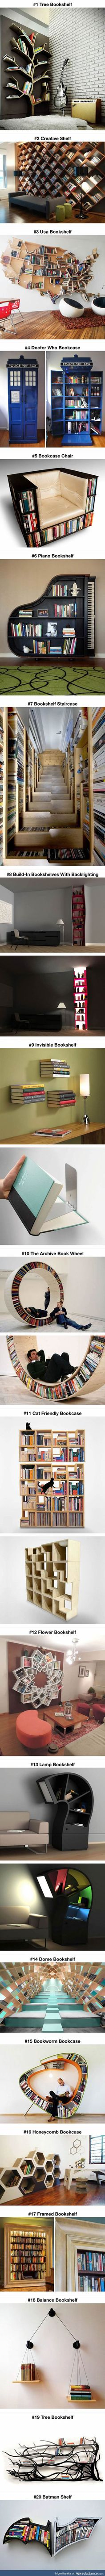 Probably the most creative bookshelves ever. I NEED THEM ALL